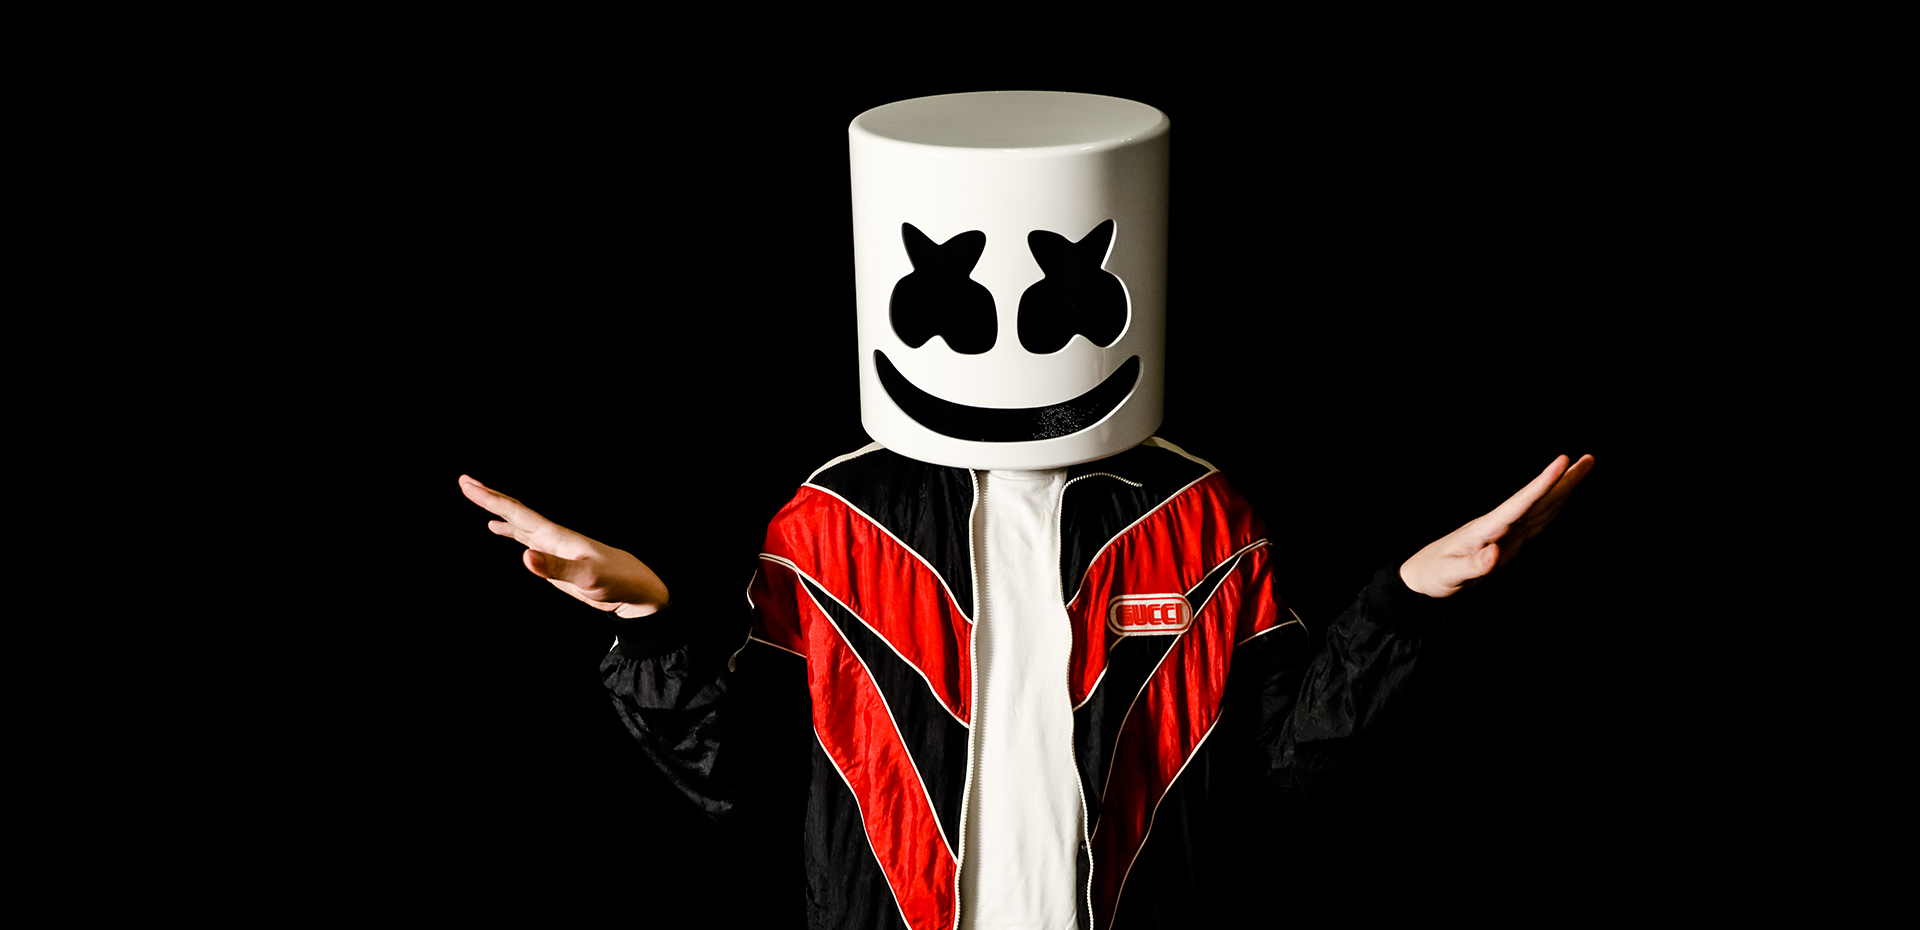 Marshmello to Headline iHeartRadio FanFest 2019 During